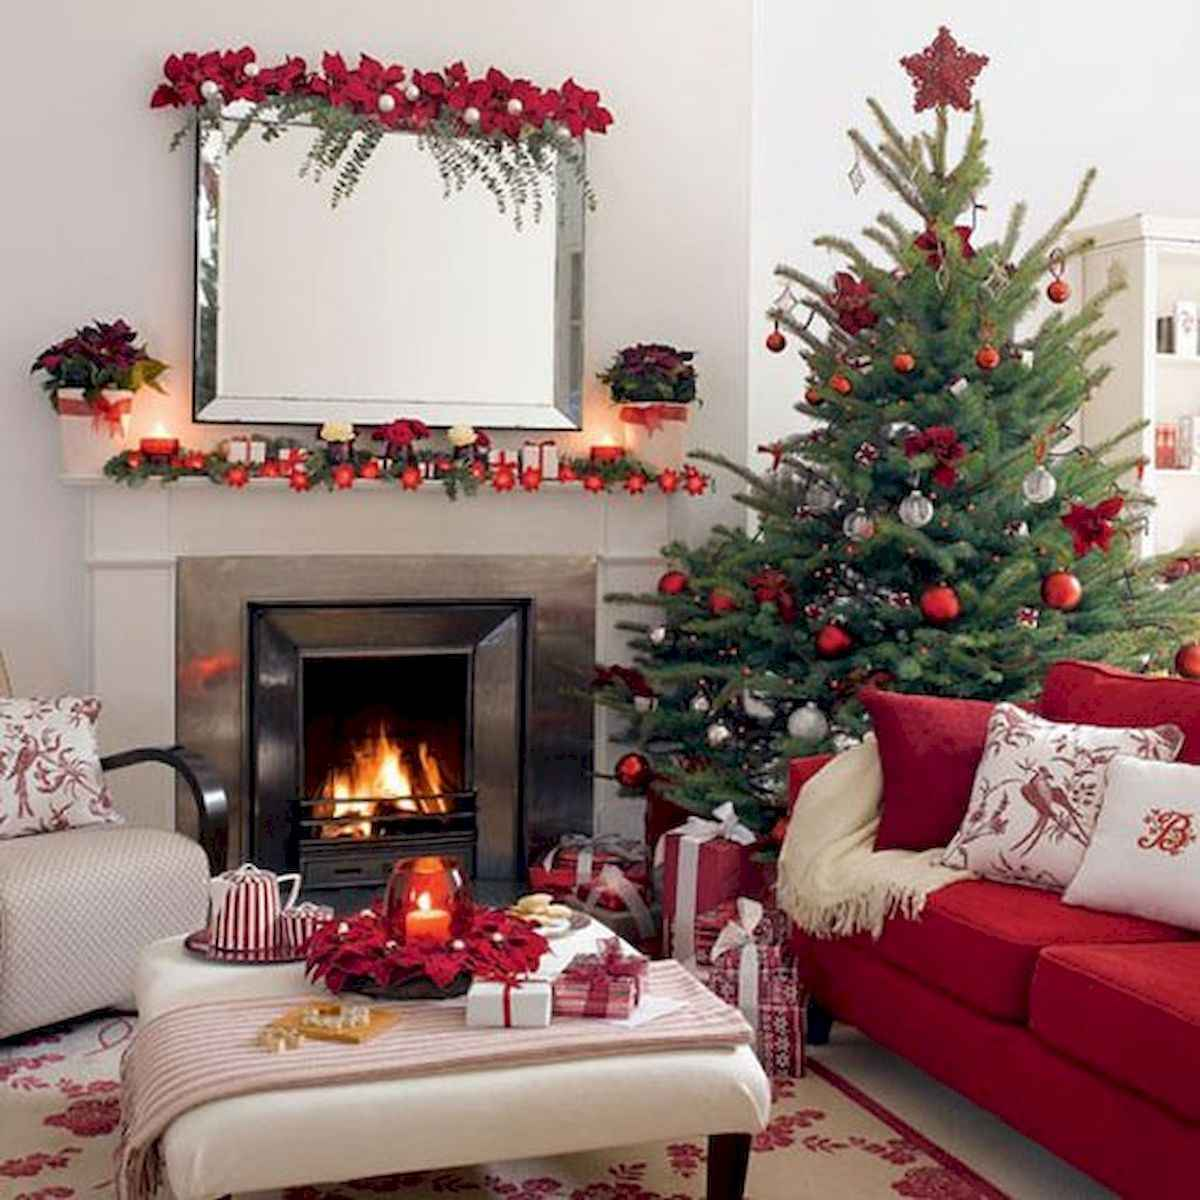 60 Simple Living Room Christmas Decorations Ideas 37